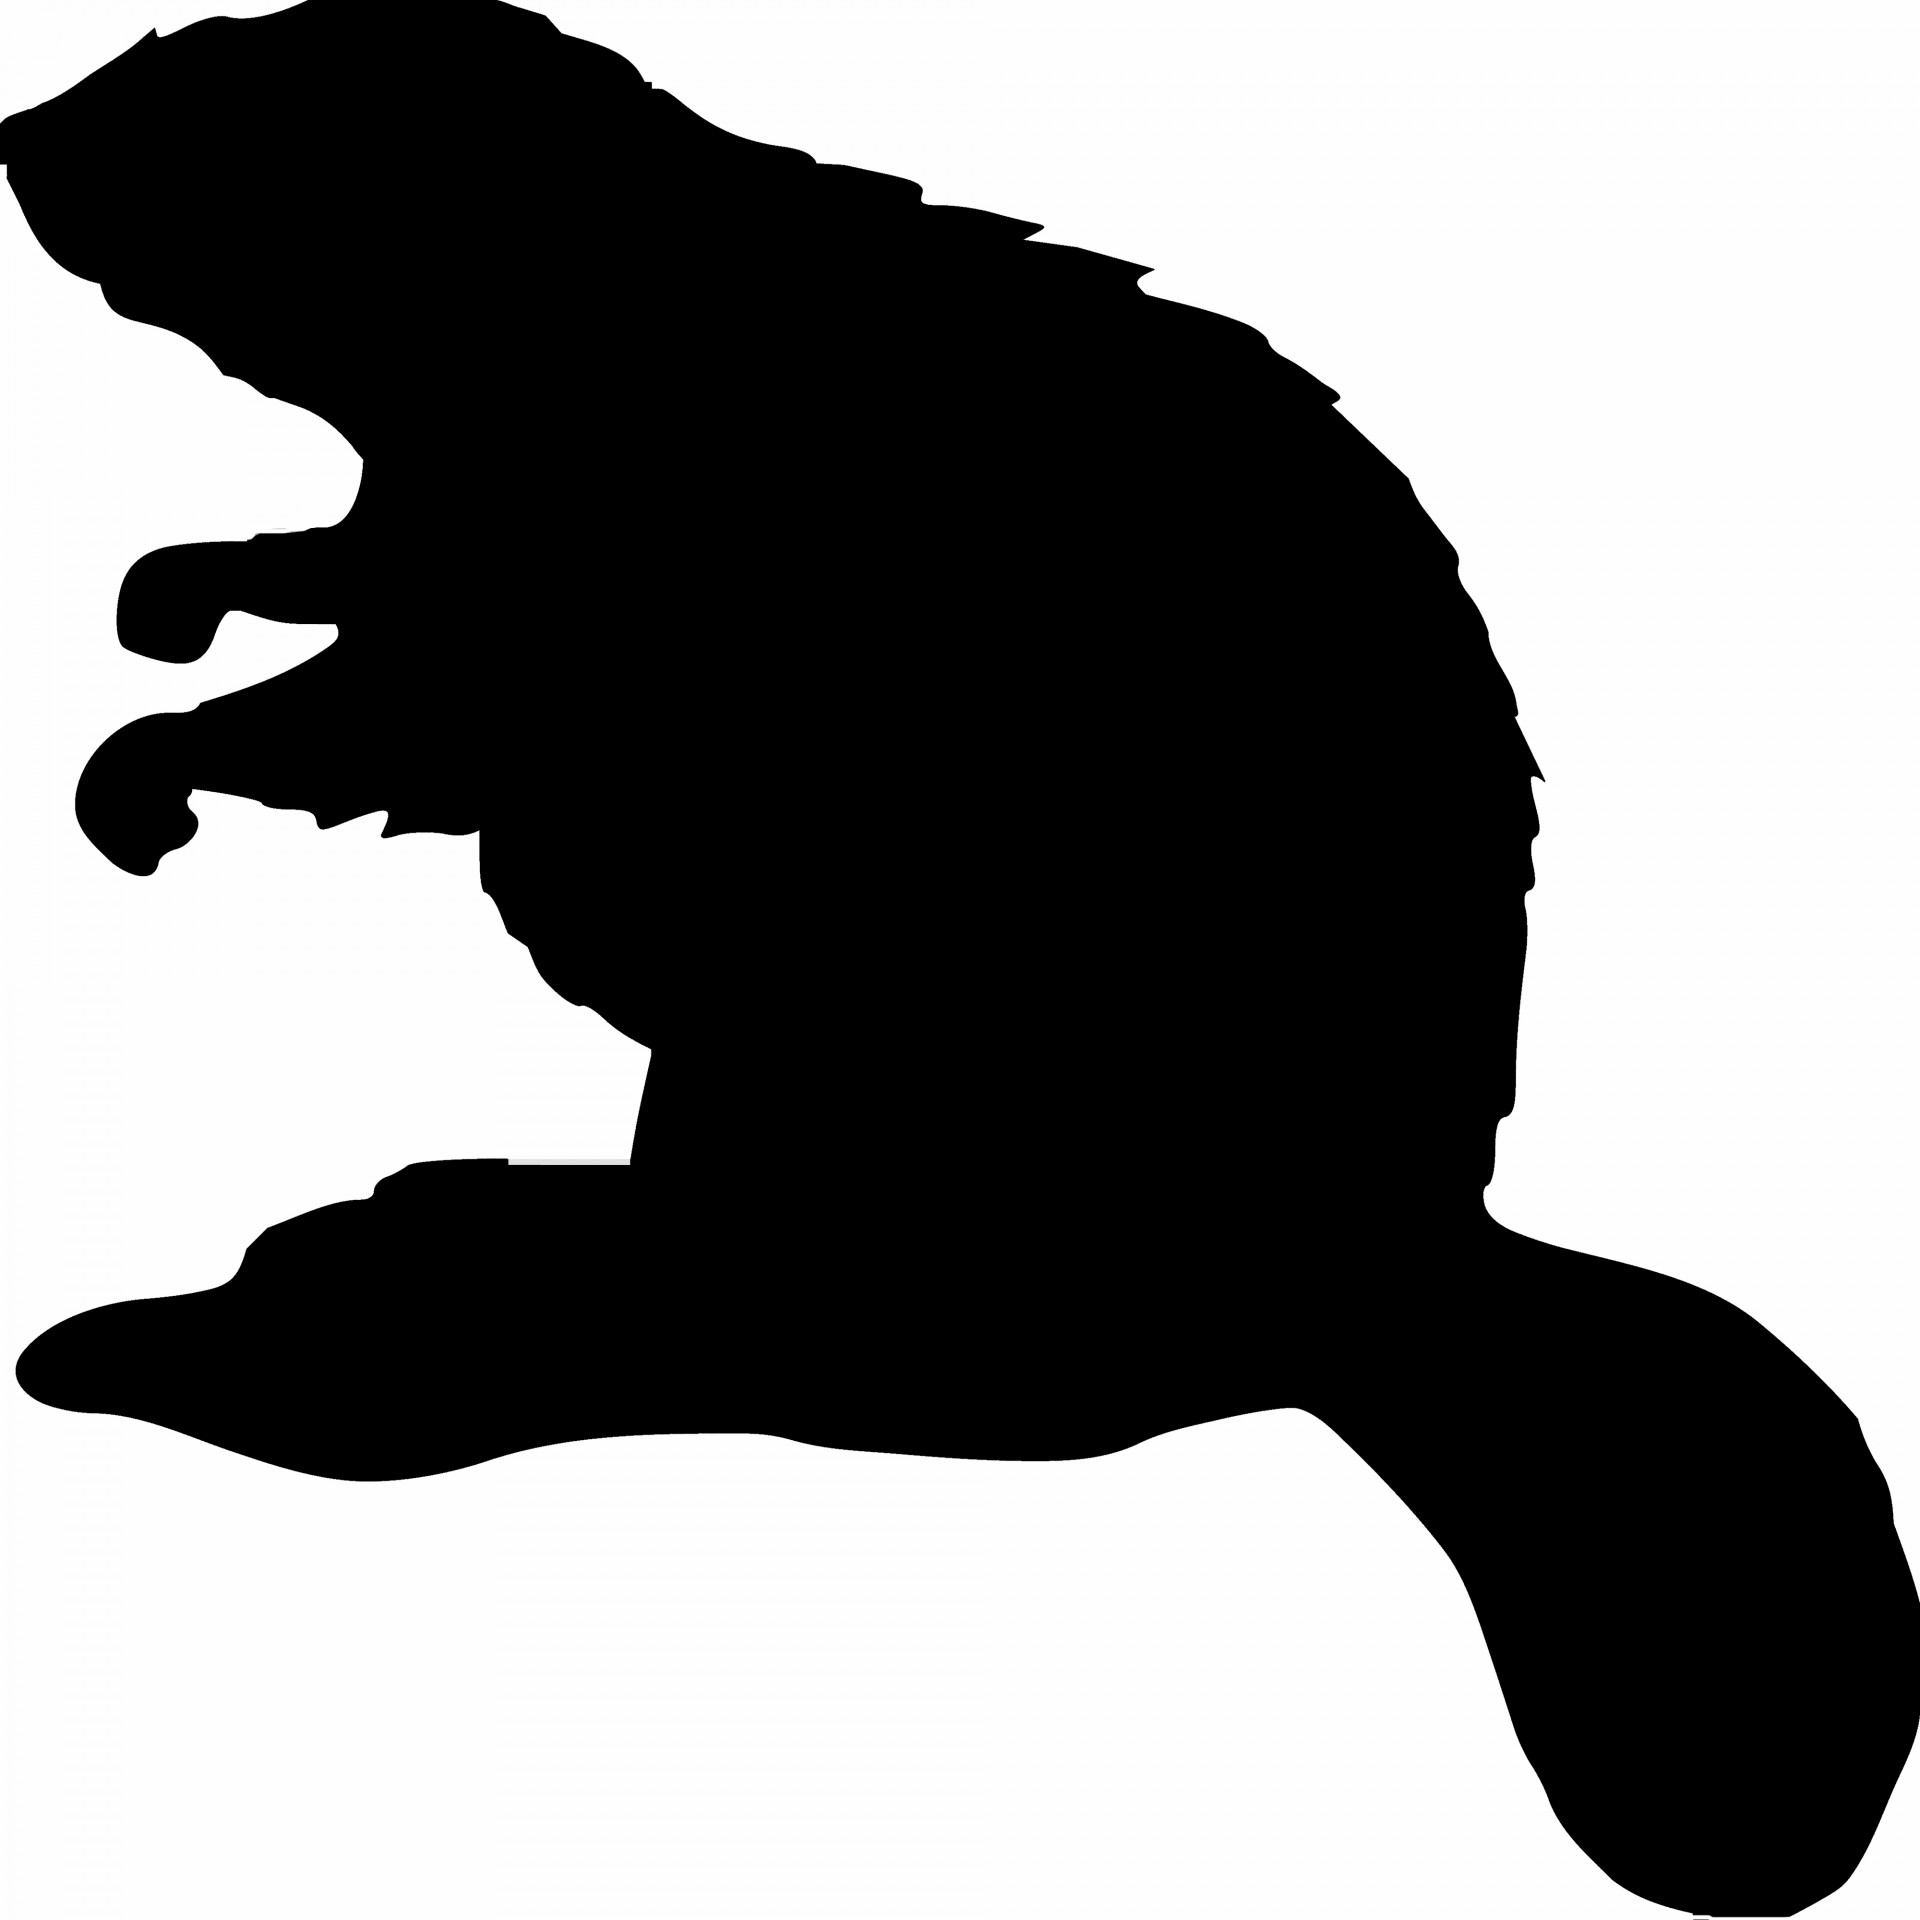 1920x1920 Beaver Silhouette Free Stock Photo